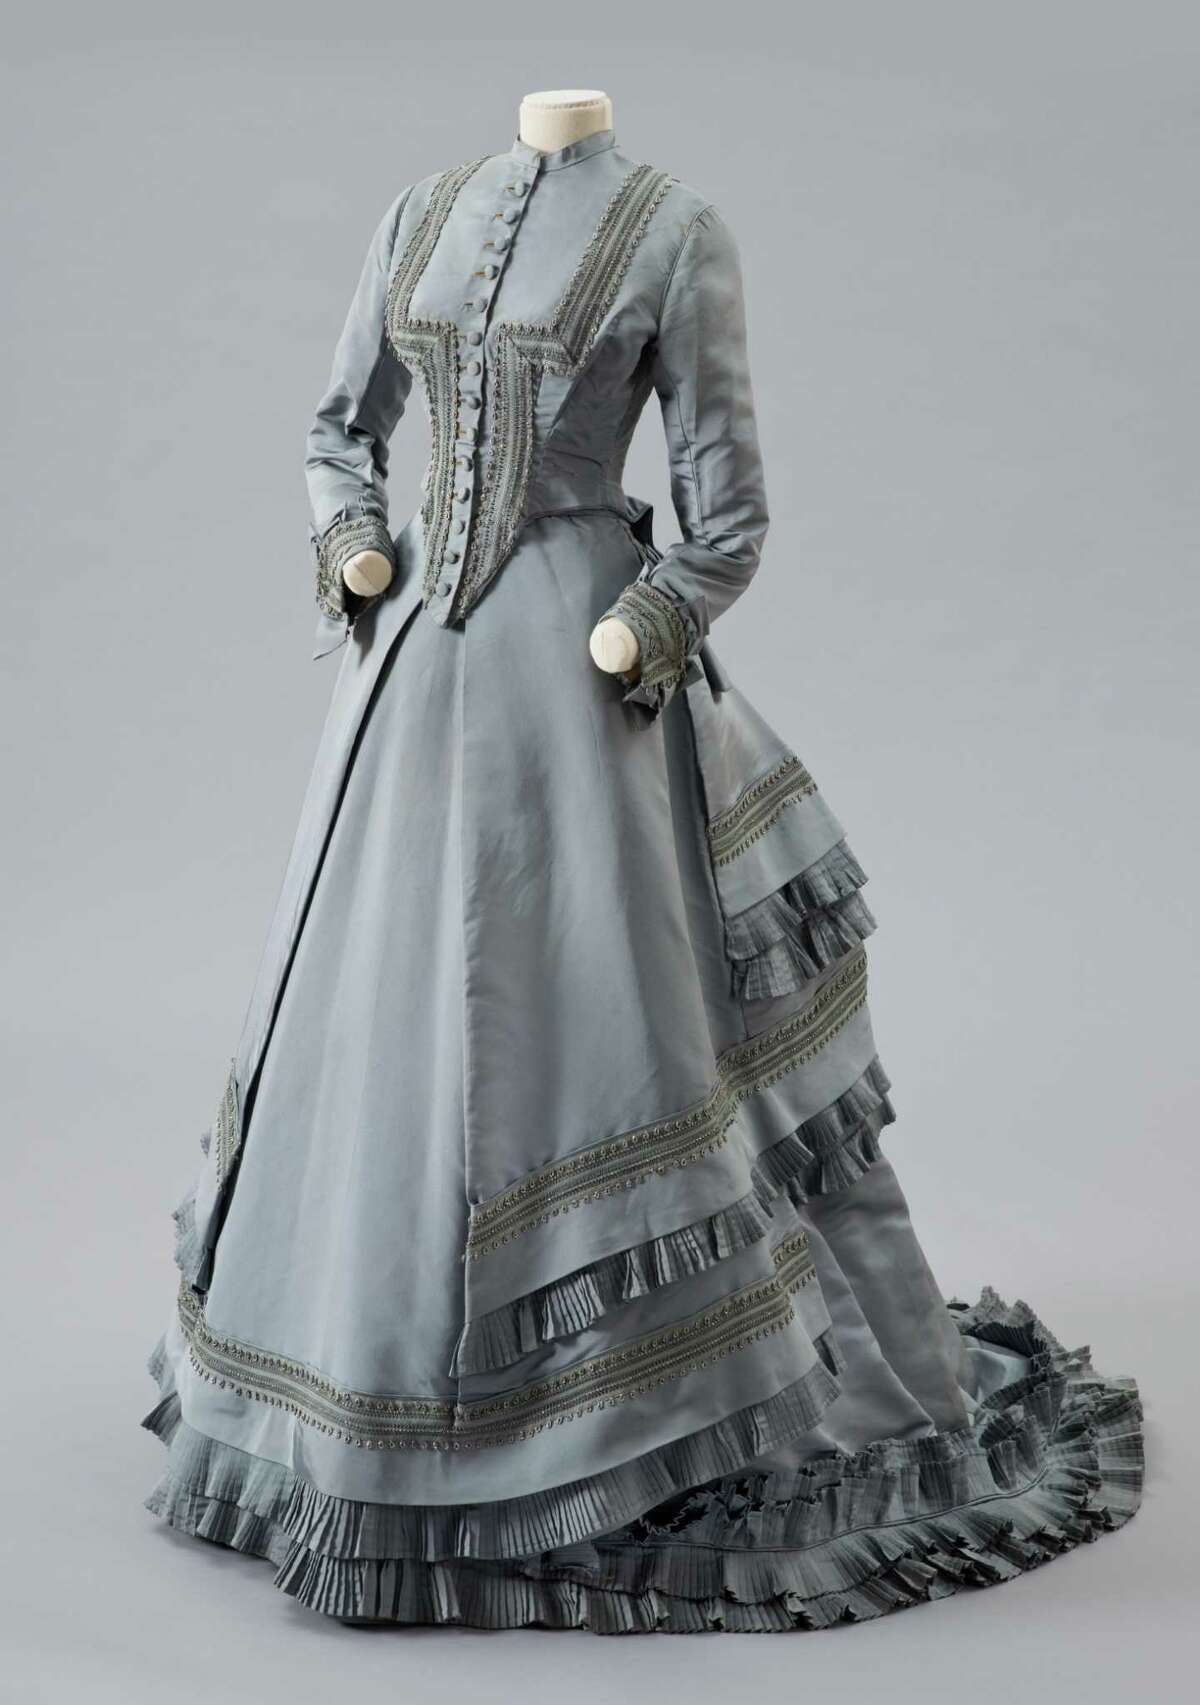 Curator Of Fashion Exibit At Albany Institute Finds Dresses Tell Tales